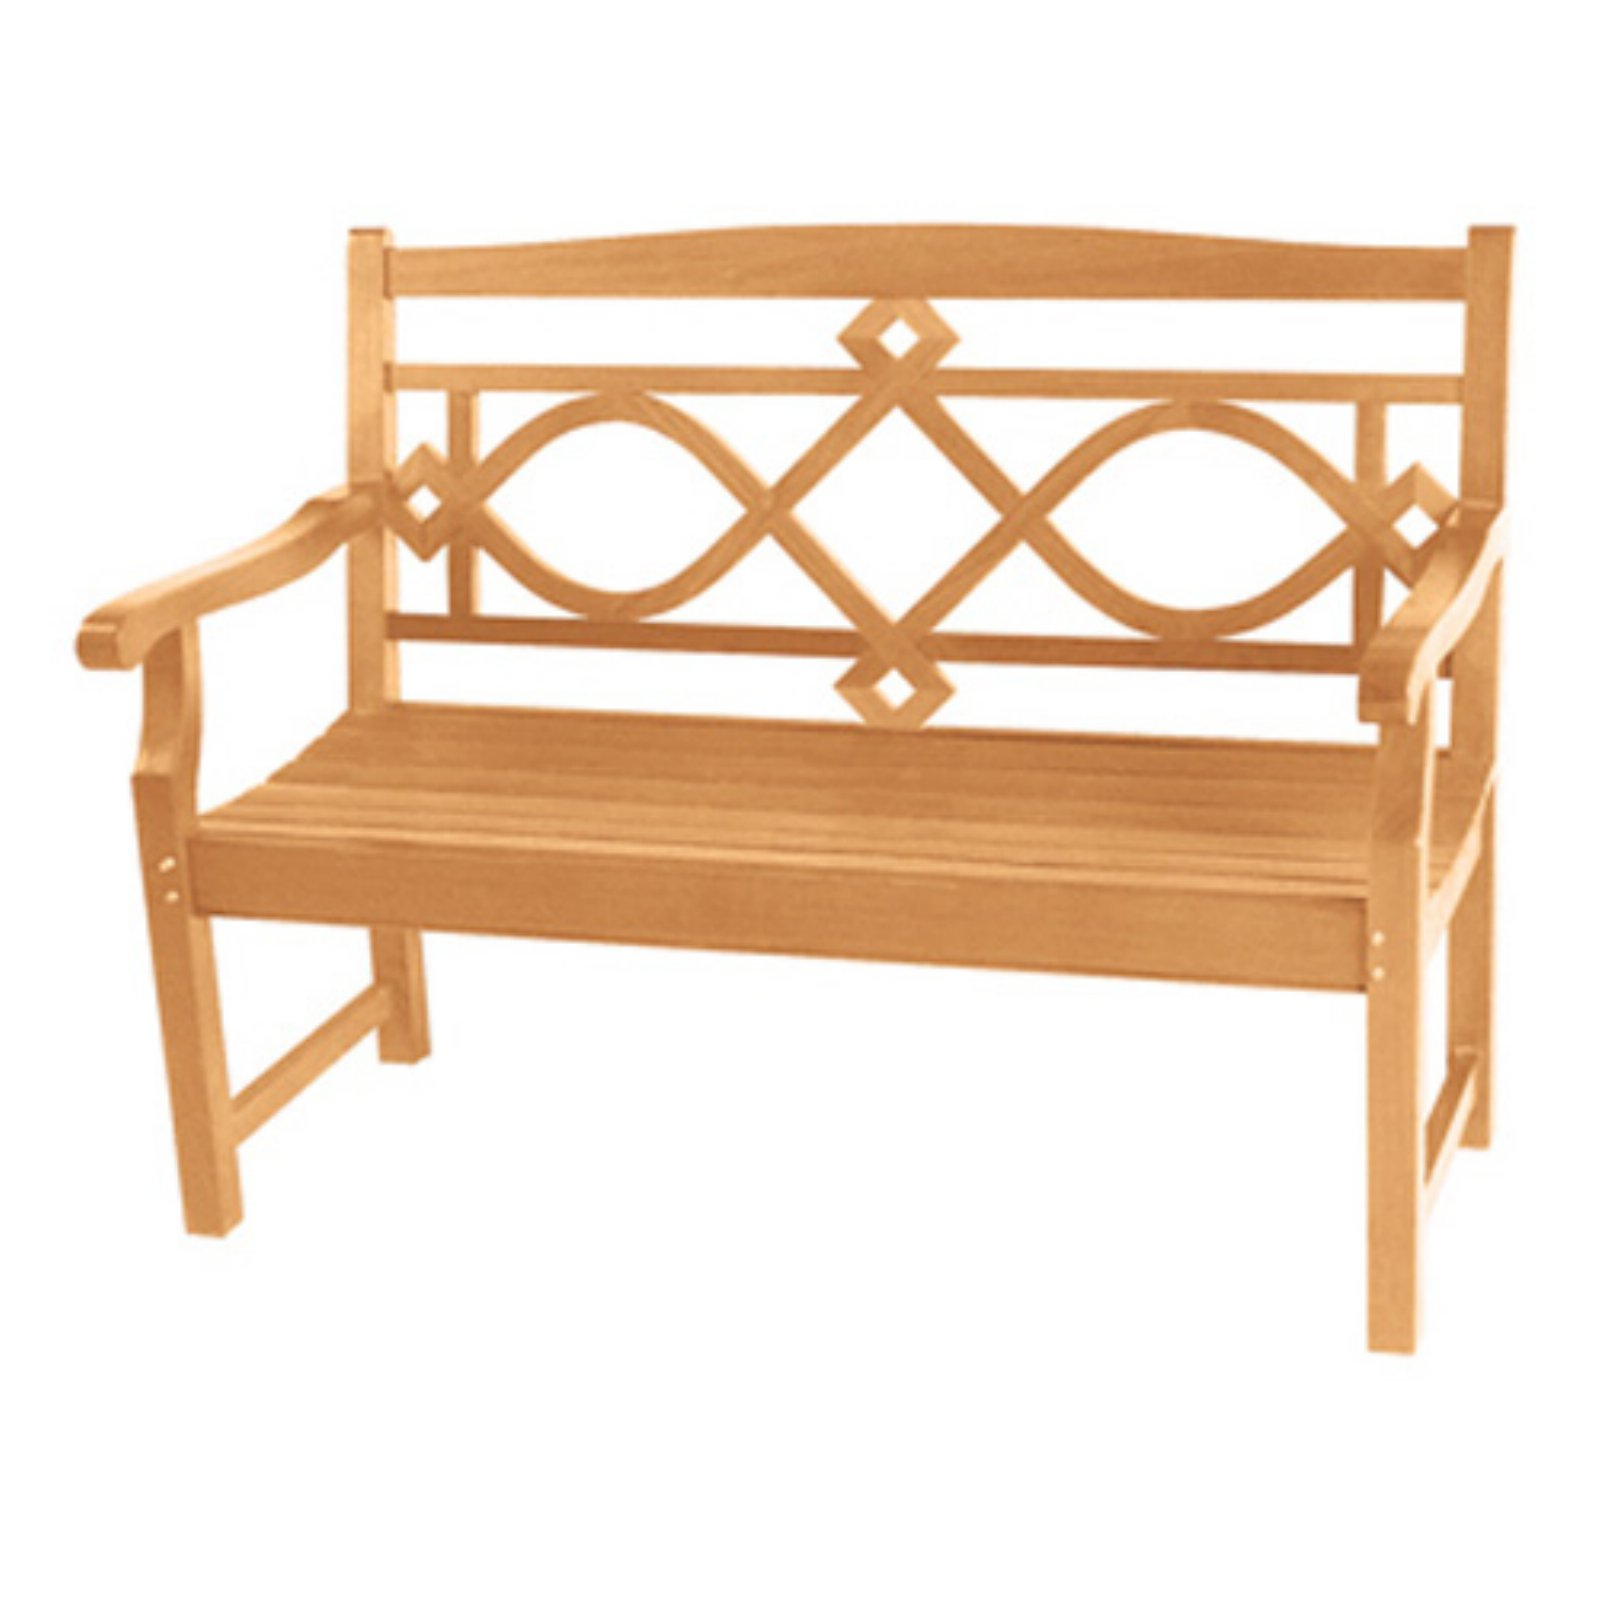 HiTeak Furniture Chelsea 47.2 in. Outdoor Bench